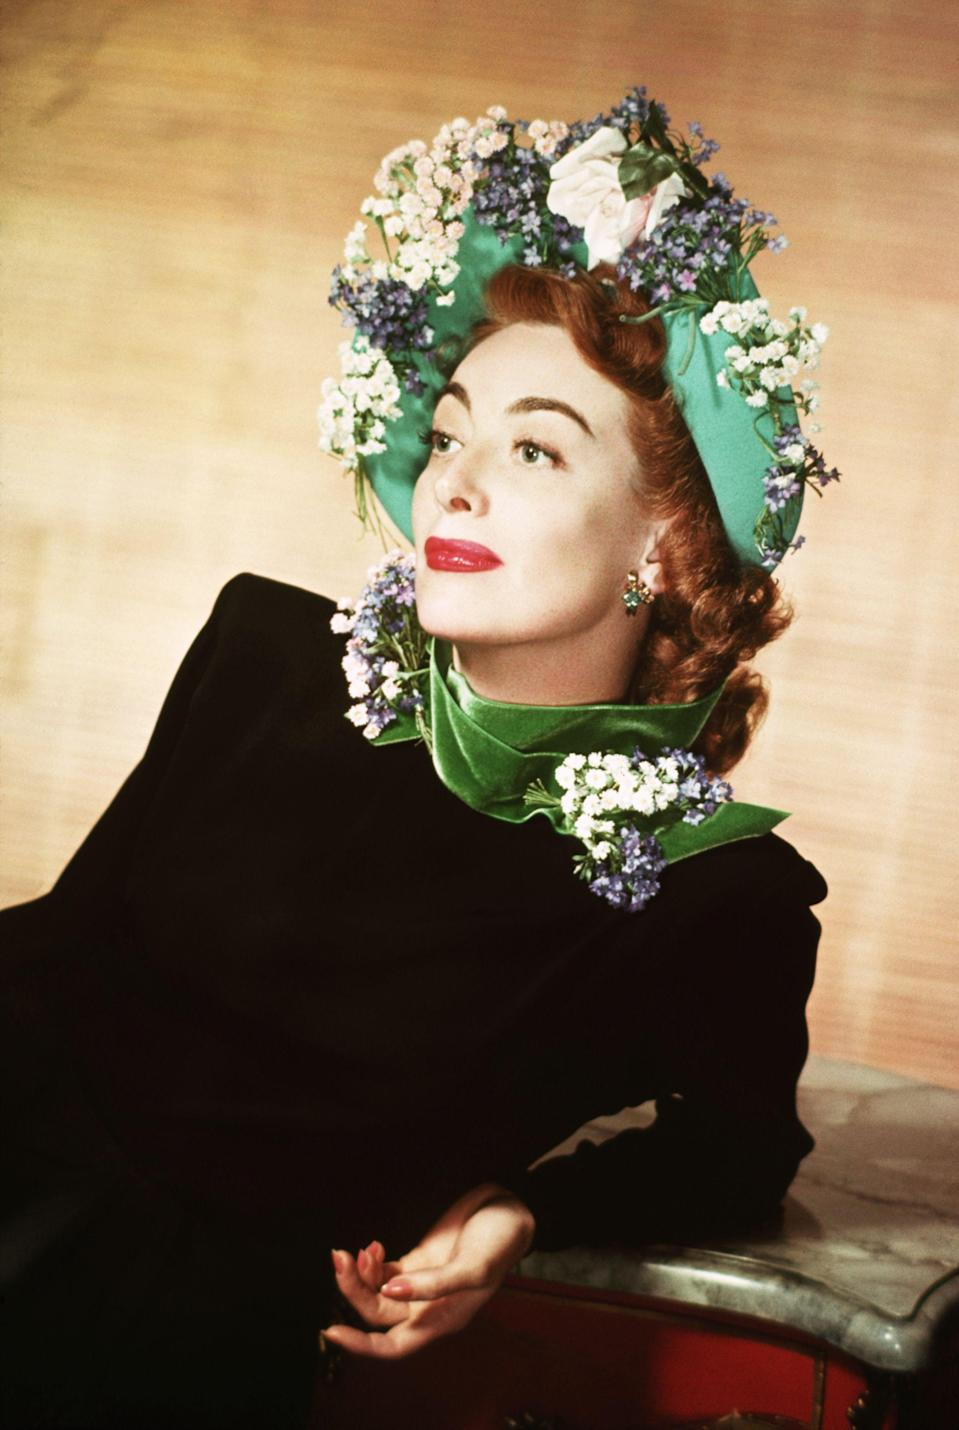 """<p>For decades, Joan Crawford held the title of Hollywood's illustrious leading lady, the jewel of cinema's golden age. But many people also remember the film star for the scandals and feuds she was involved in off-camera. Take a look back at her alluring life and career in pictures (and don't forget to browse our coverage of similarly iconic leading ladies, such as <a href=""""https://www.goodhousekeeping.com/beauty/g3608/lucille-ball-vintage-photos/"""" rel=""""nofollow noopener"""" target=""""_blank"""" data-ylk=""""slk:Lucille Ball"""" class=""""link rapid-noclick-resp"""">Lucille Ball</a> and <a href=""""https://www.goodhousekeeping.com/life/entertainment/g28307872/rare-photos-of-judy-garland/"""" rel=""""nofollow noopener"""" target=""""_blank"""" data-ylk=""""slk:Judy Garland"""" class=""""link rapid-noclick-resp"""">Judy Garland</a>). </p>"""